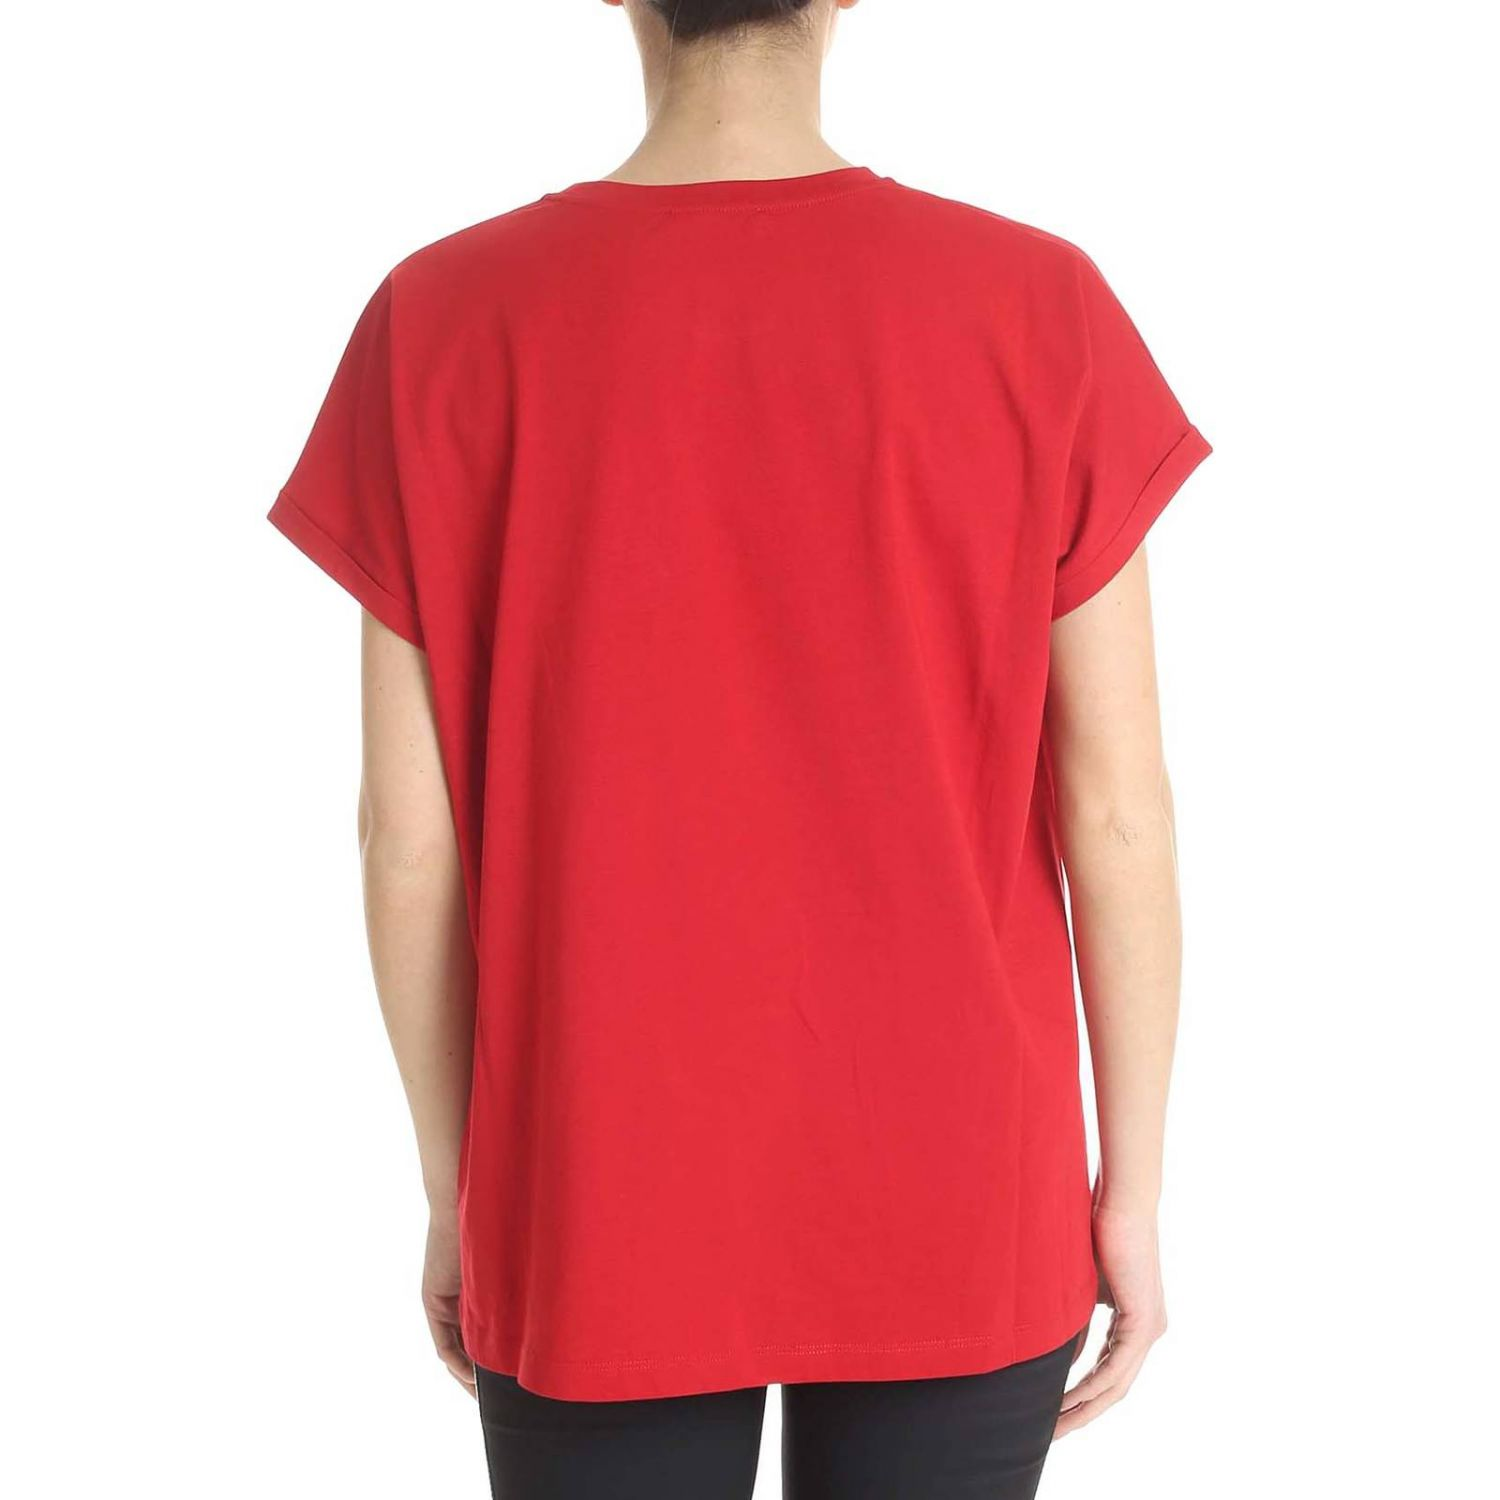 T-Shirt Balmain: T-shirt women Balmain red 3